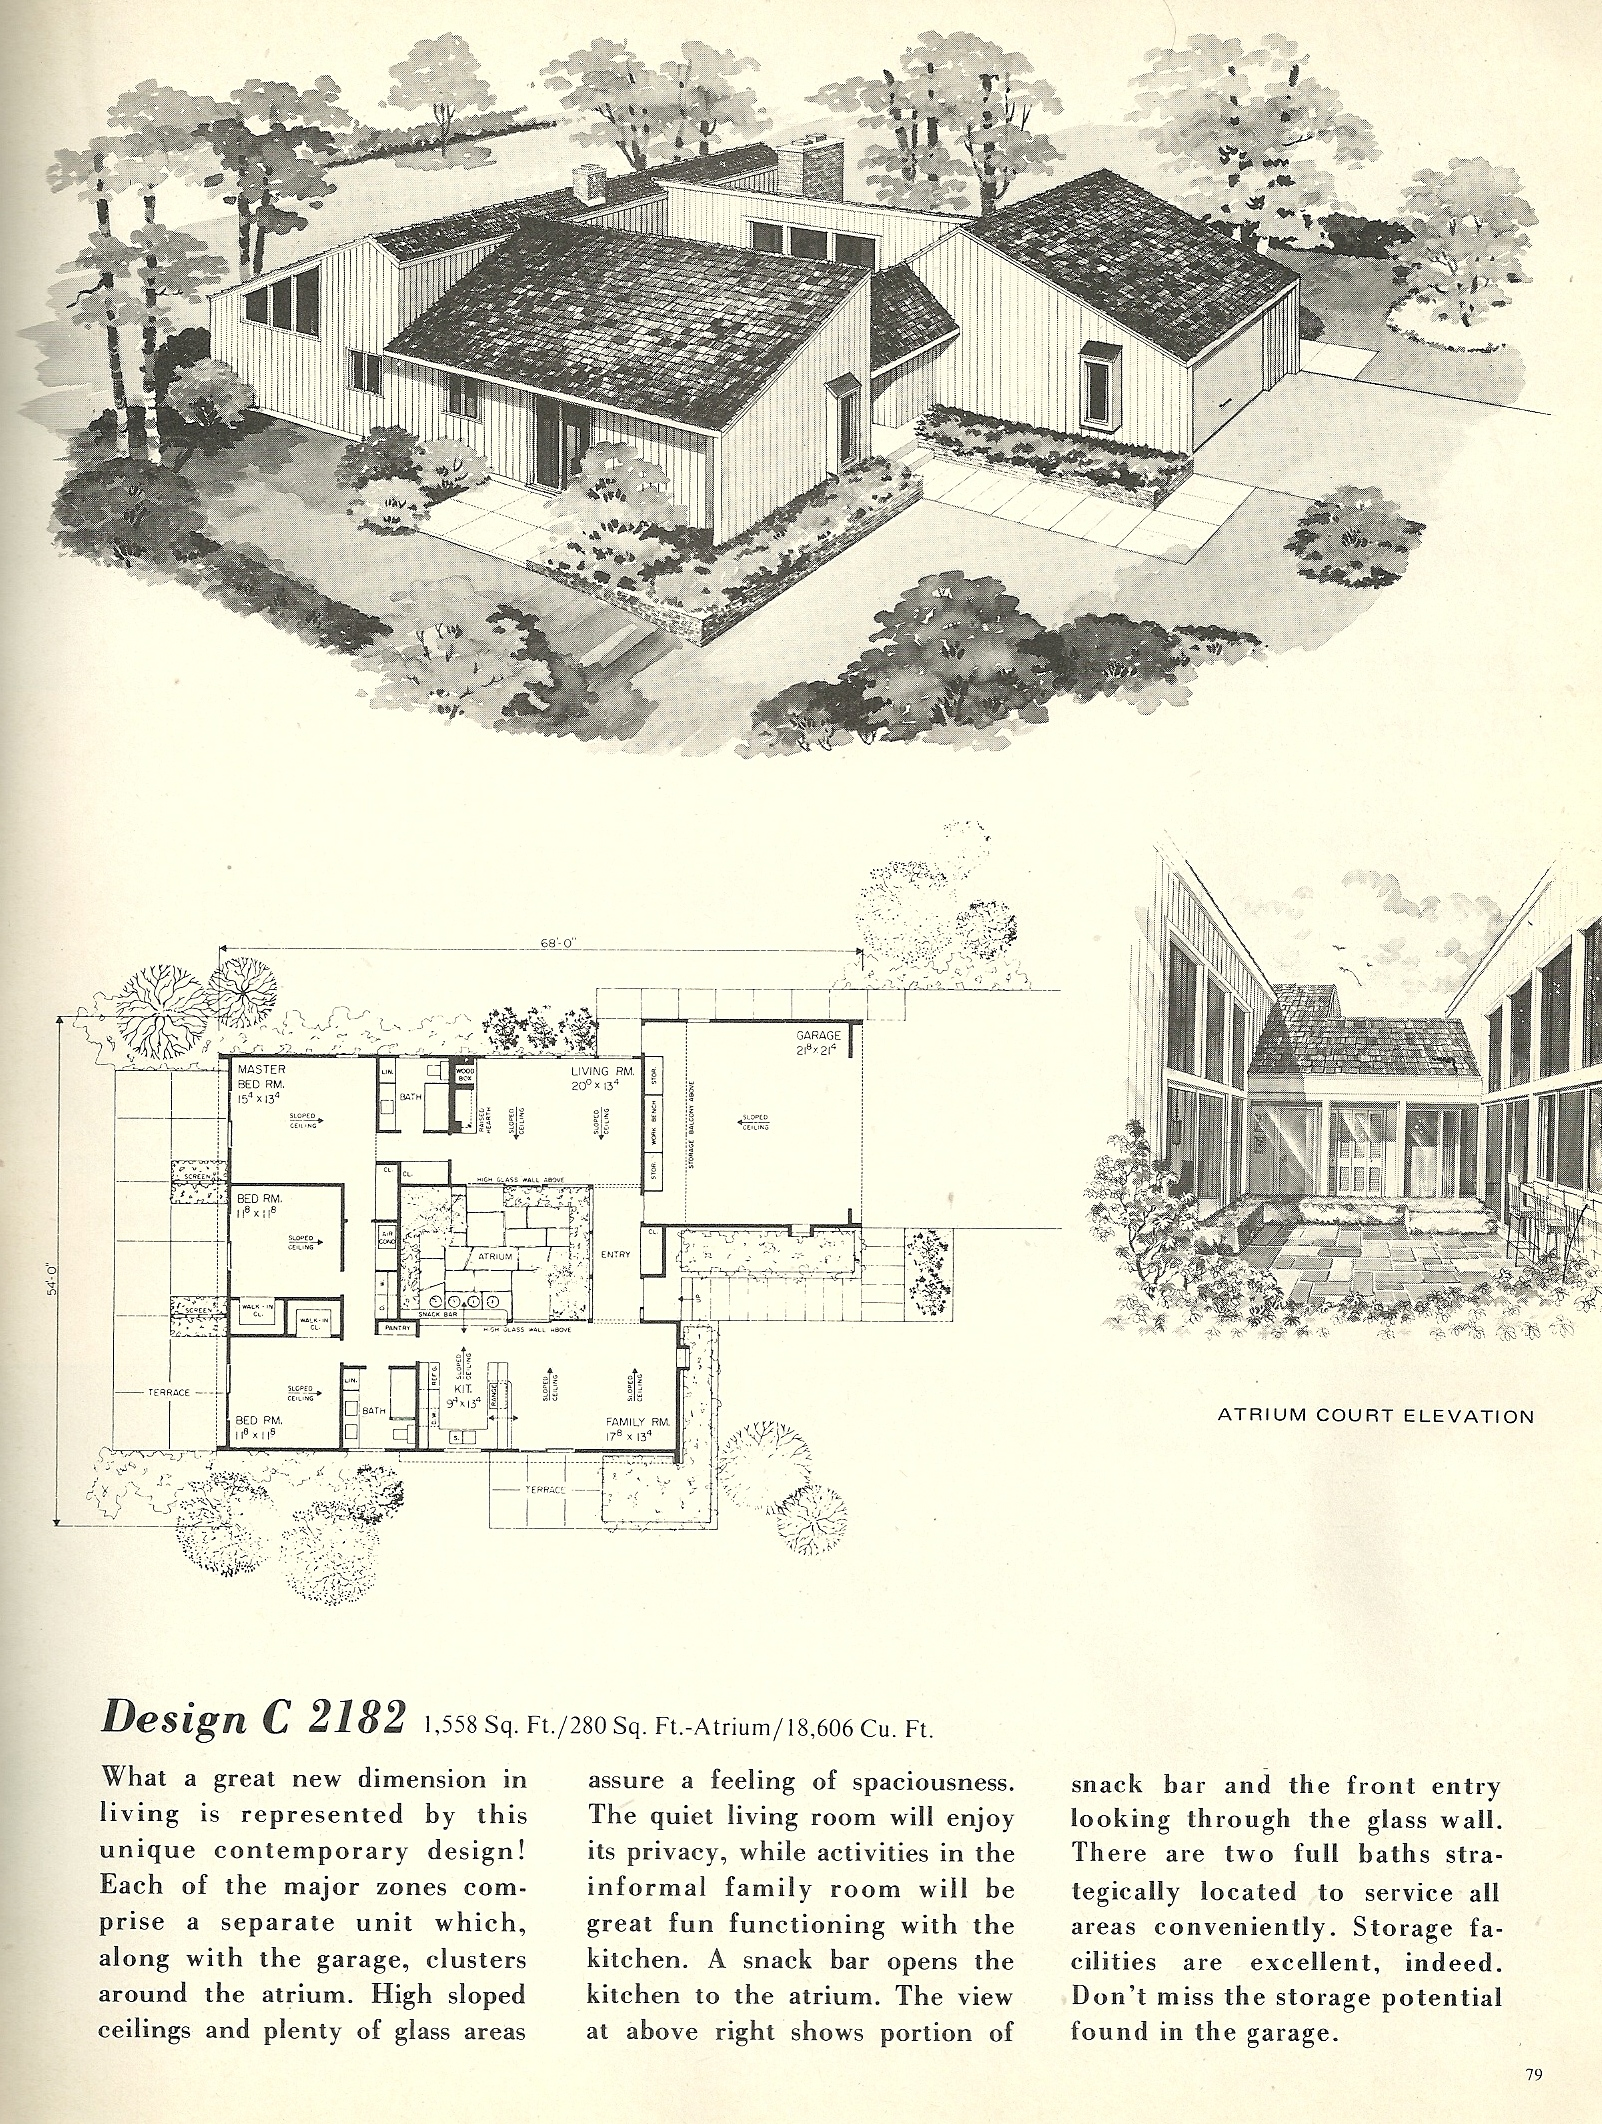 Vintage house plans 2182 antique alter ego for New old home plans